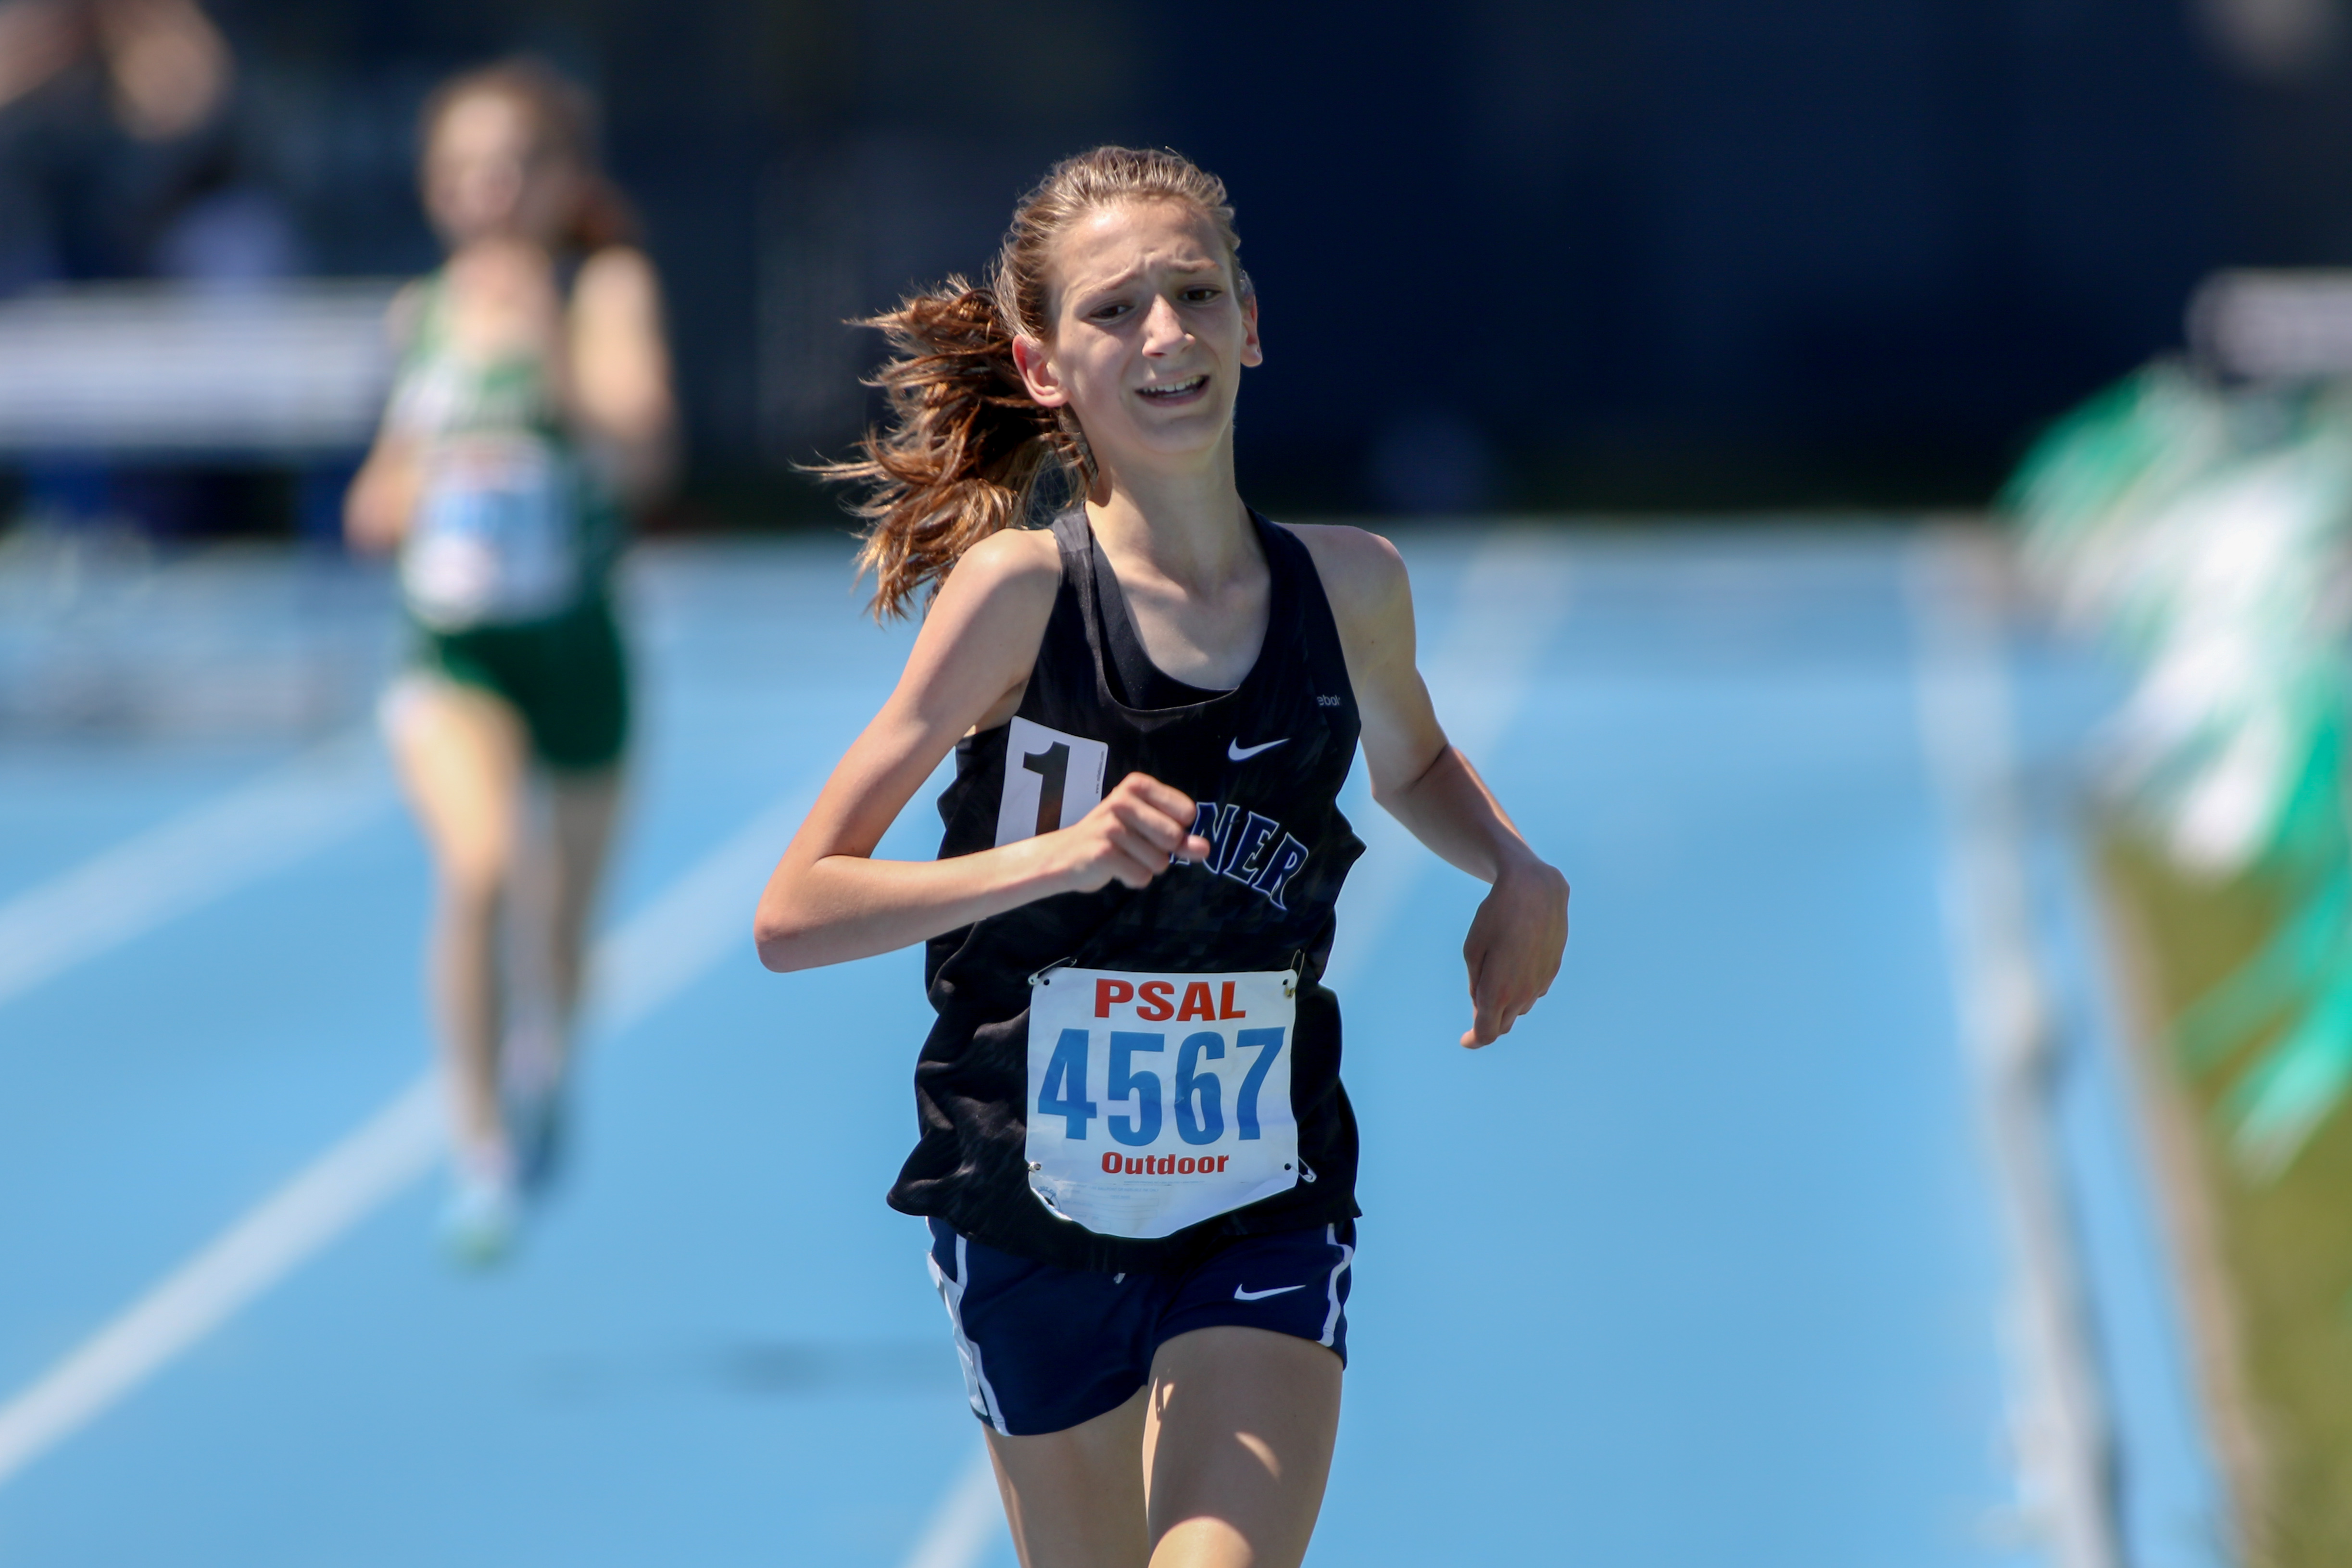 Susan Wagner's Katie Altieri finishes 13th in 5000 meters at New Balance Nationals